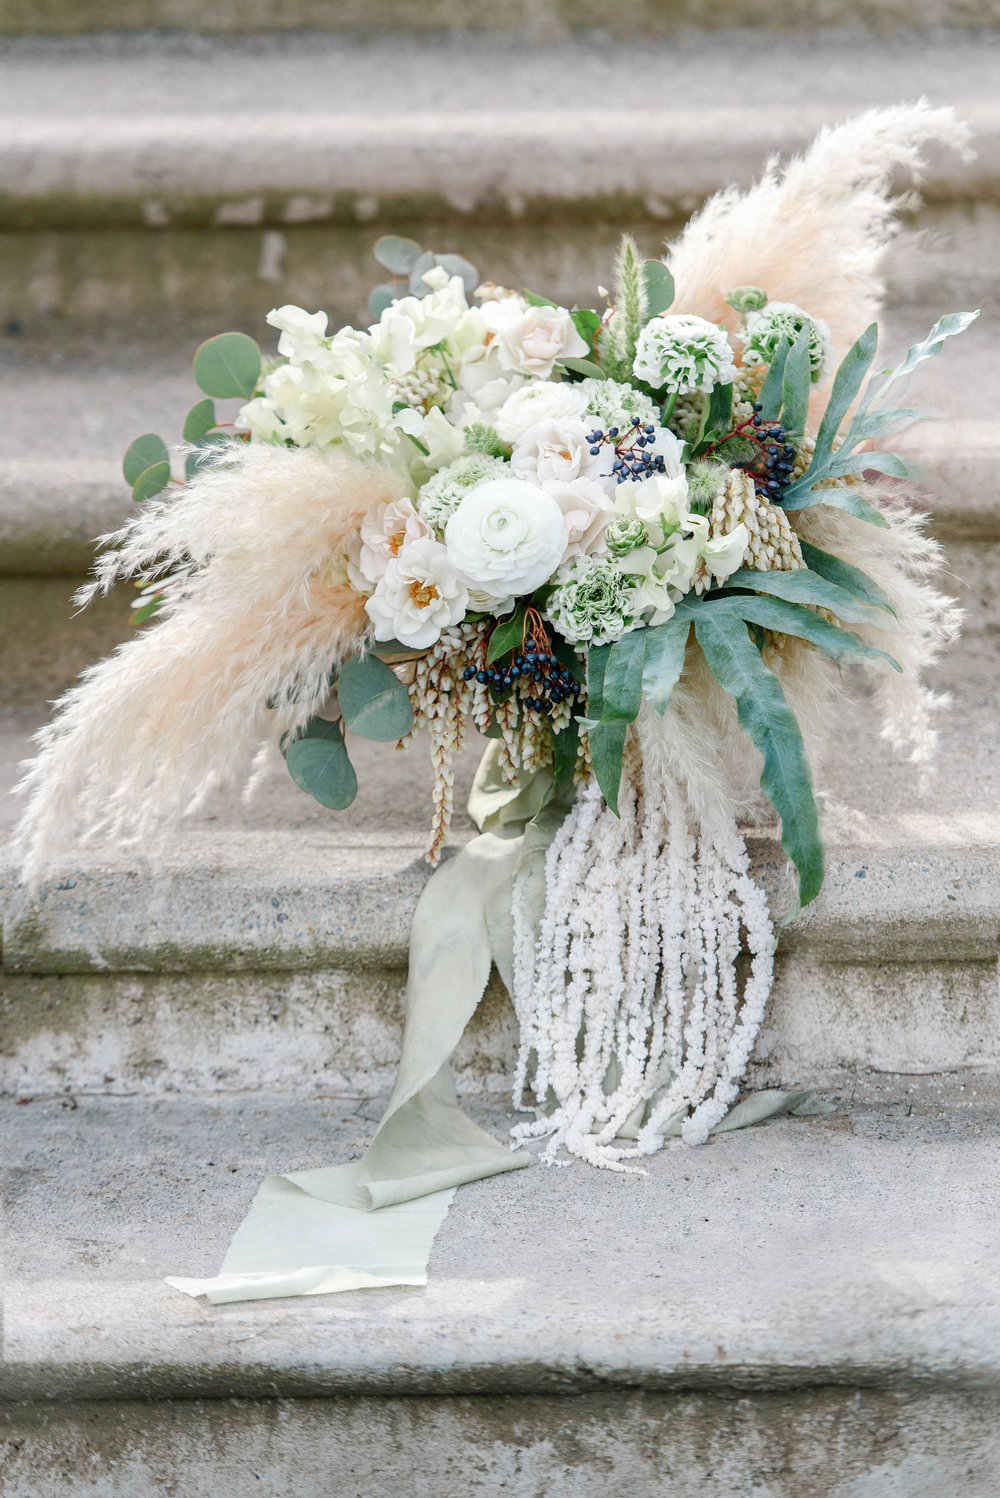 Unique Bridal Bouquet | White Bridal Bouquet | Neutral Bridal Bouquet | Pampas Grass